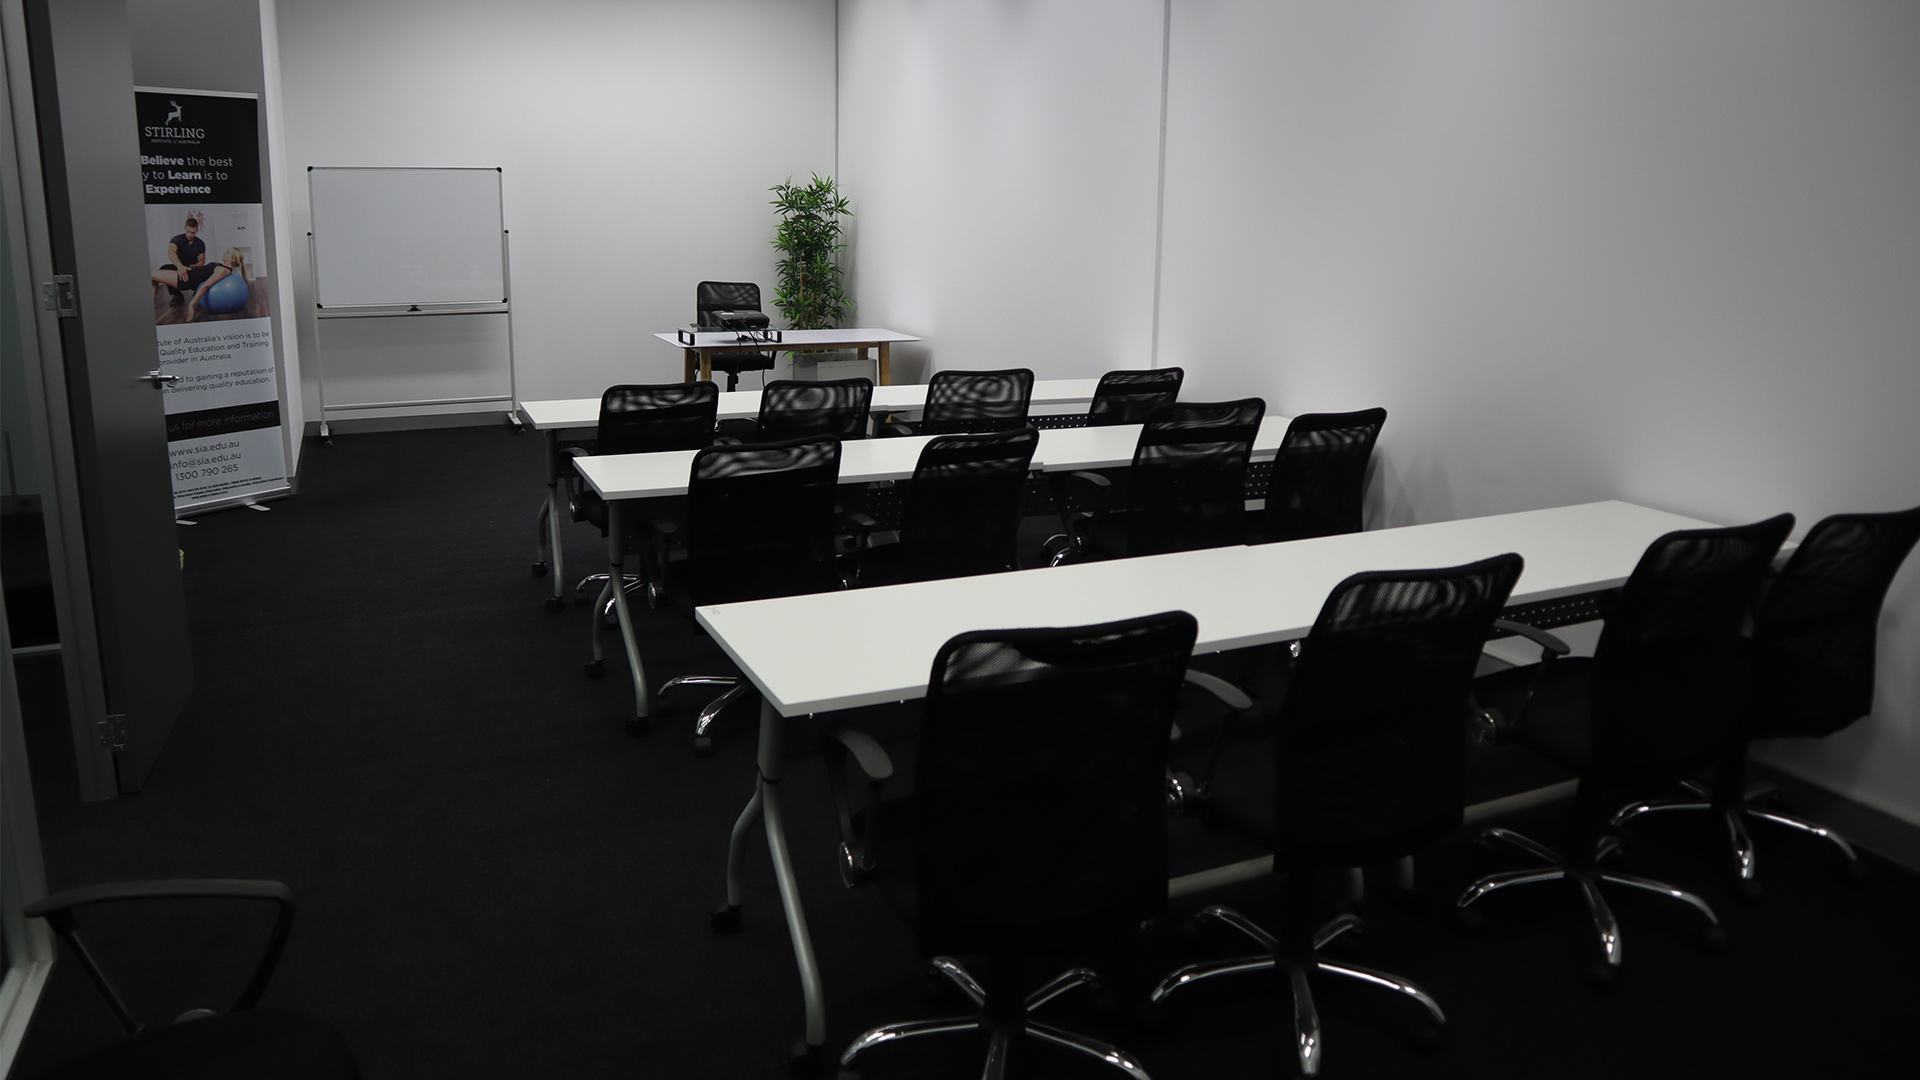 Classroom - Ground Floor - Exceptional, recently renovated classroom on the Ground Floor in the heart of Melbourne's CBD, Southbank. Comfortably seating 20 with use of:- 9B Classification- WIFI Internet- Whiteboard and markers- Projector- Use of shared kitchen spaceClassroom Ground Floor $350 per day plus GST